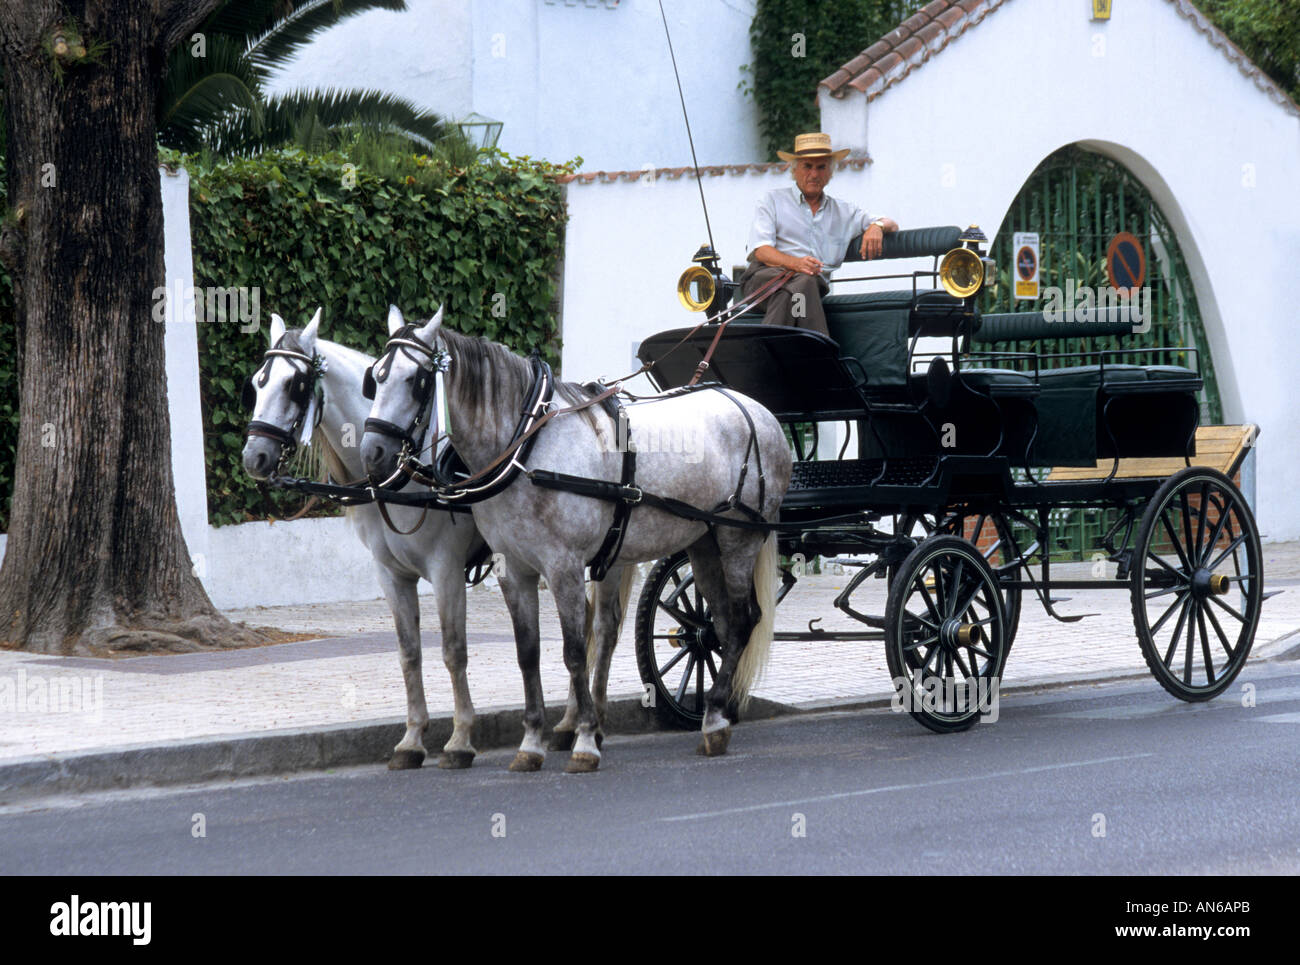 Carriage and horses waiting for tourists at Jerez de la Frontera Spain - Stock Image